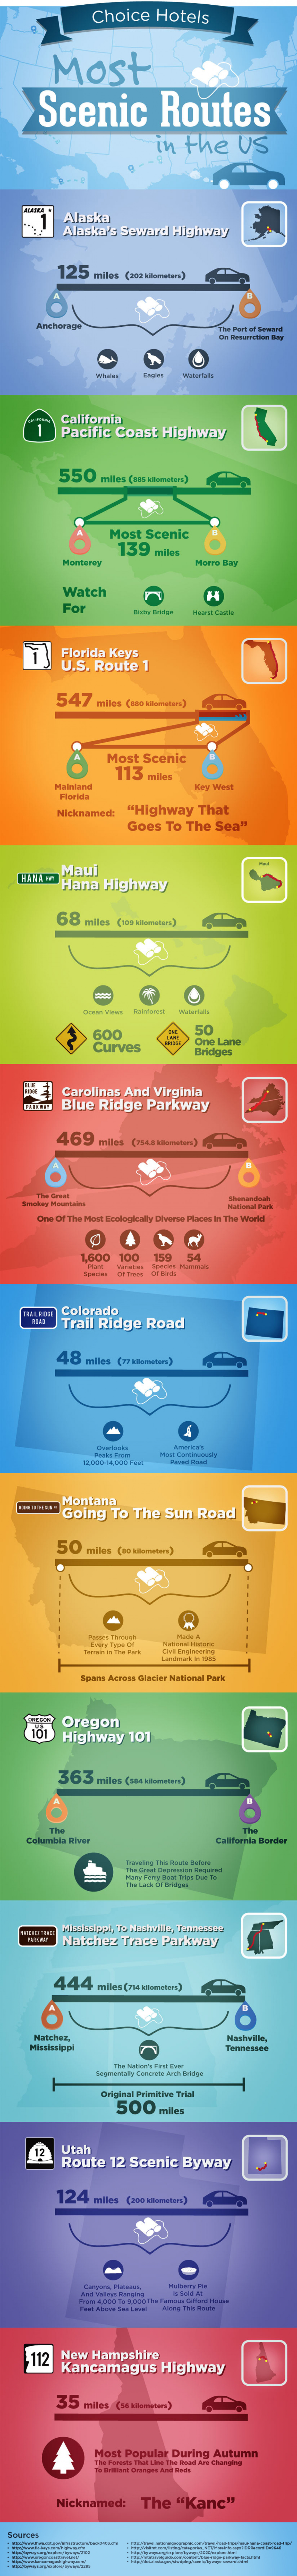 Most Scenic Routes in the US Infographic